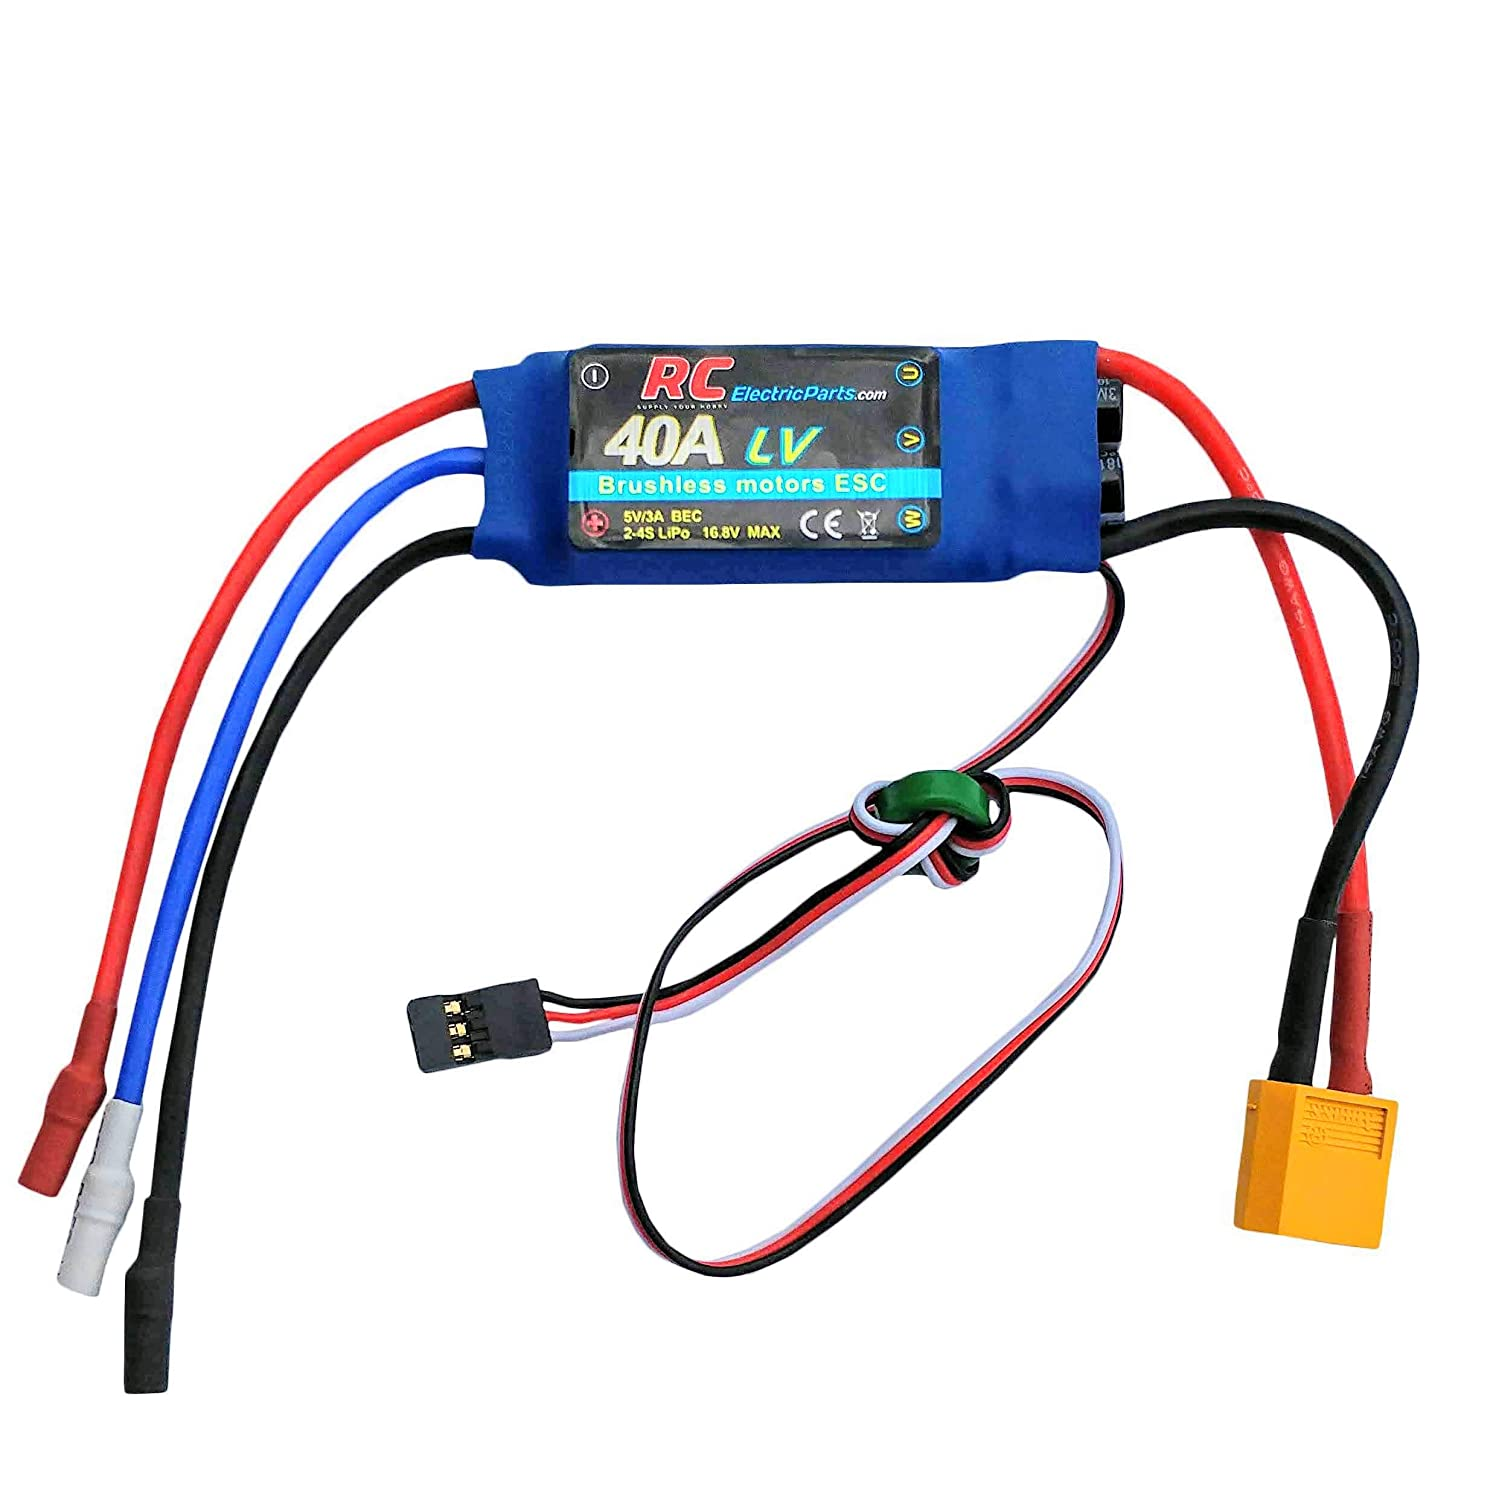 40a Rc Brushless Motor Electric Speed Controller Esc 3a Diy Electronic Homemade For Ubec With Xt60 35mm Bullet Plugs Toys Games